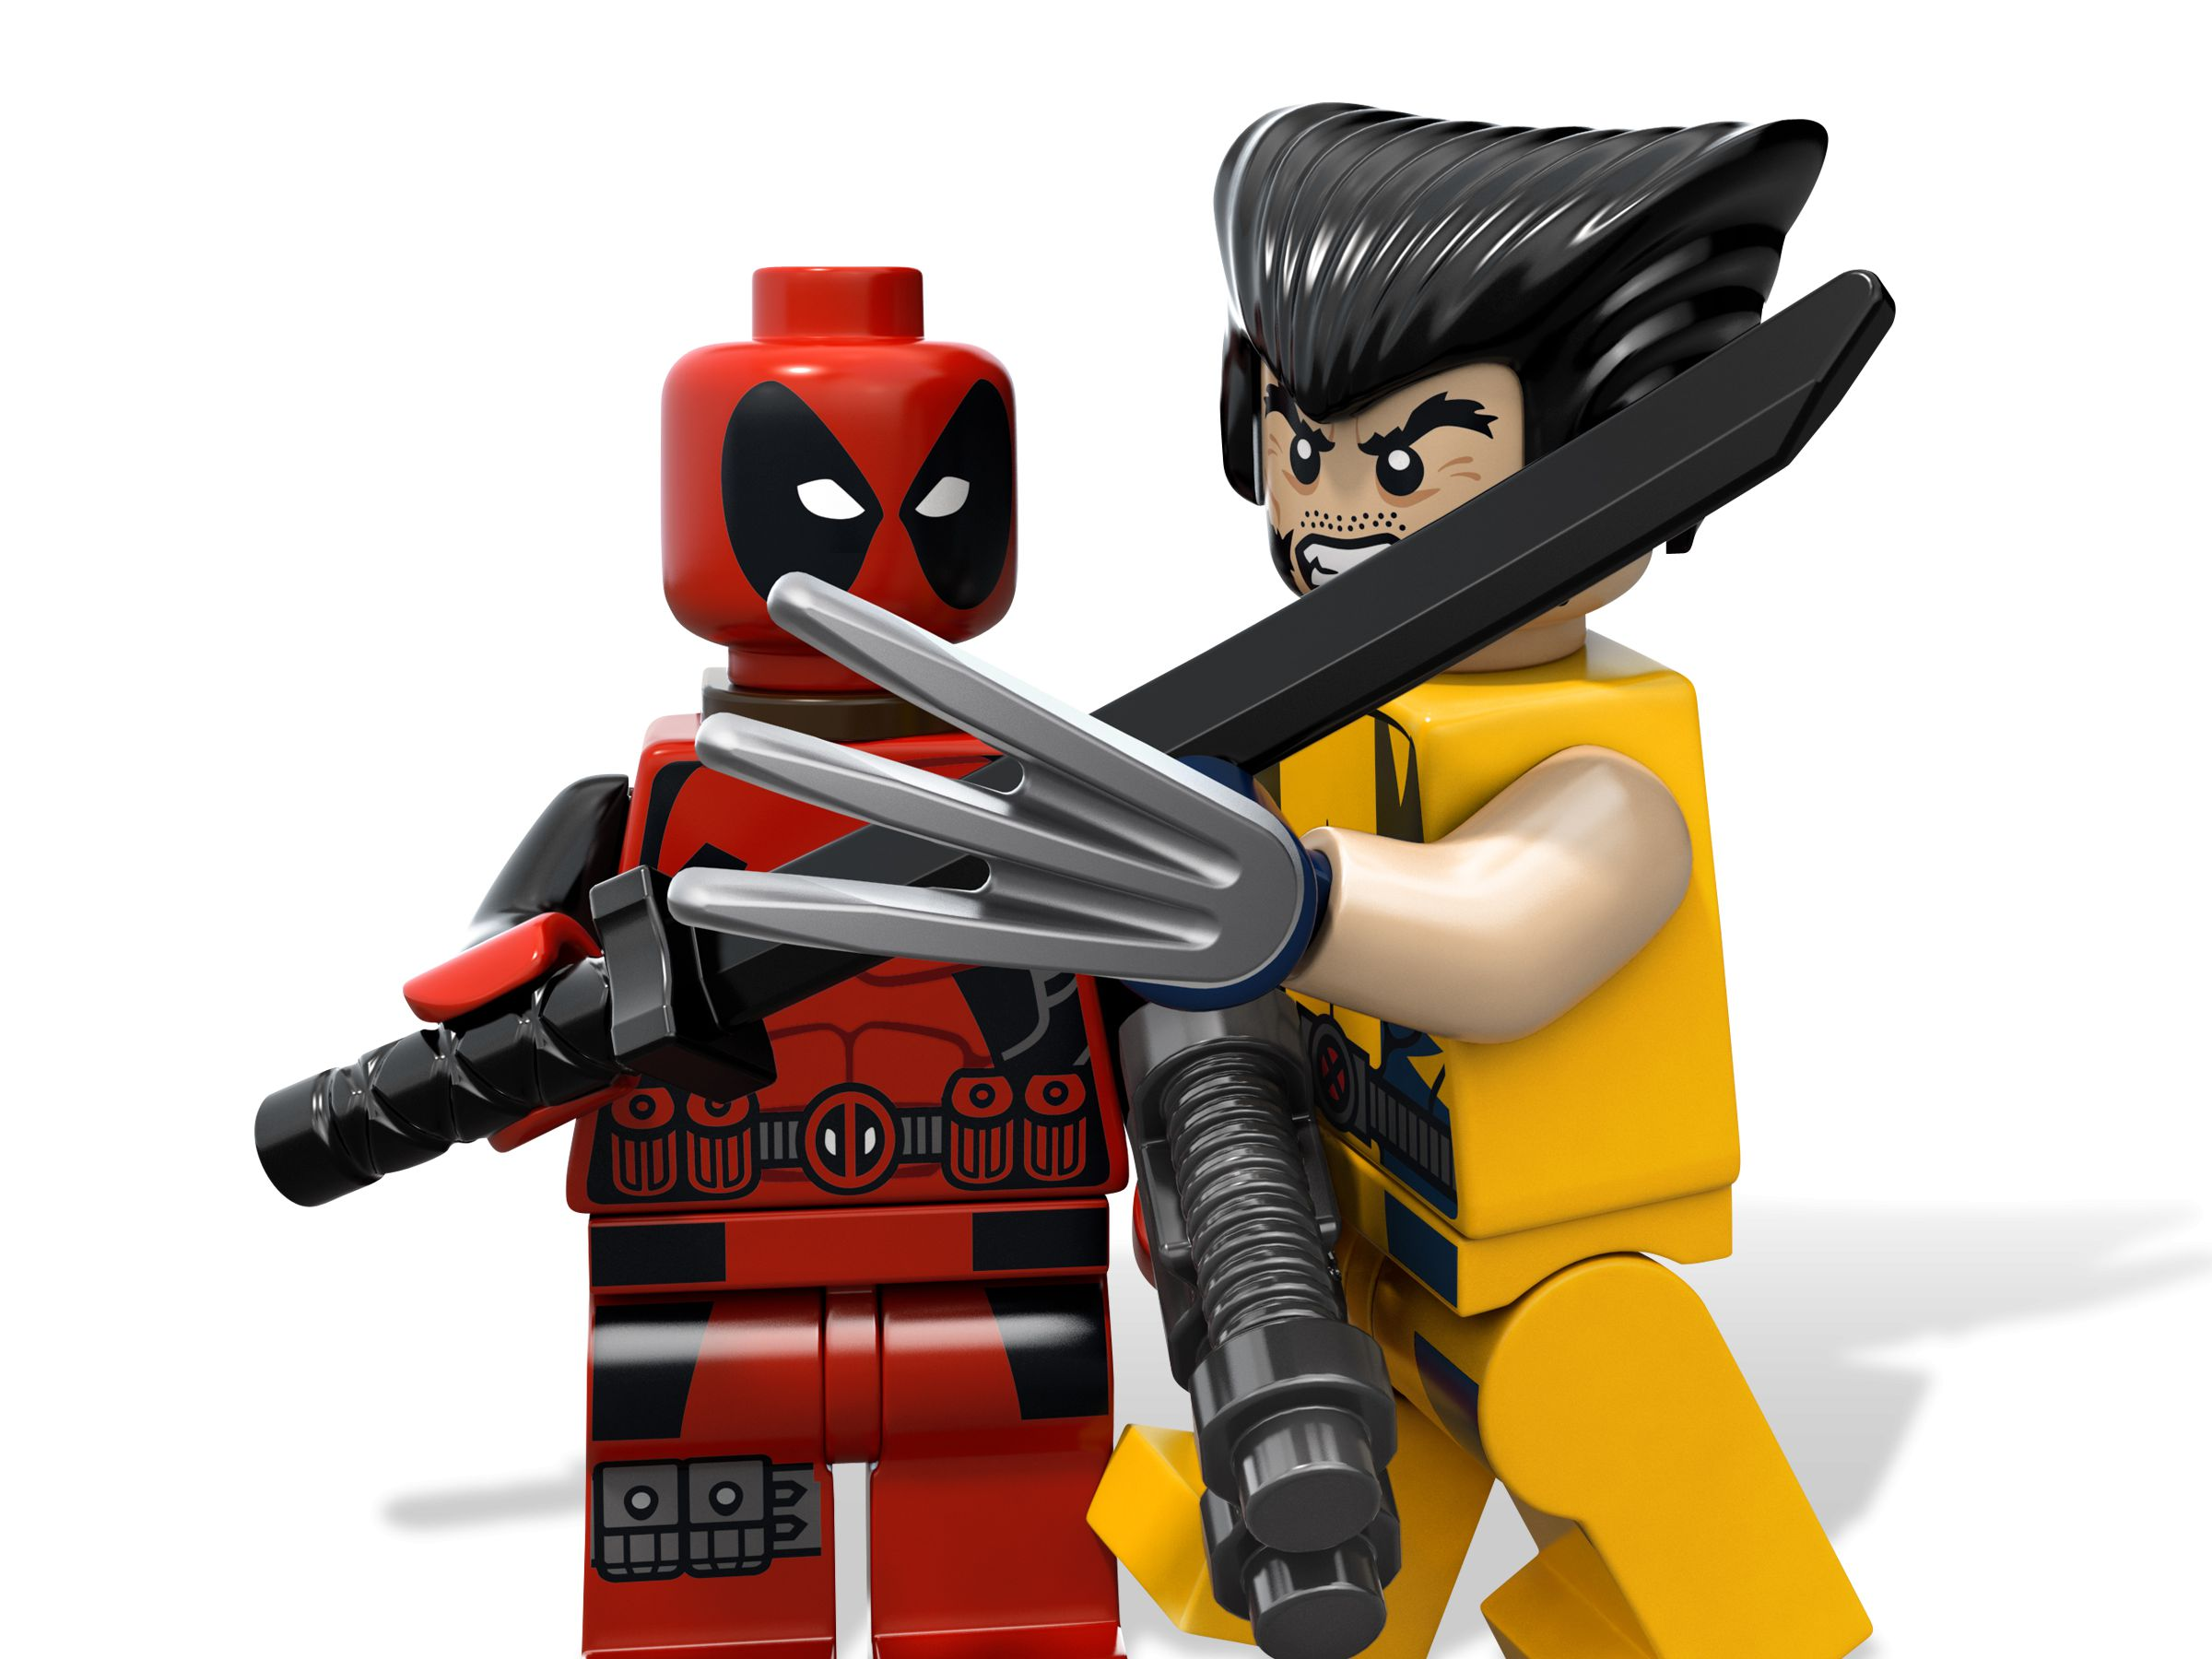 LEGO Super Heroes 6866 Wolverine's Chopper Showdown LEGO_6866_alt2.jpg